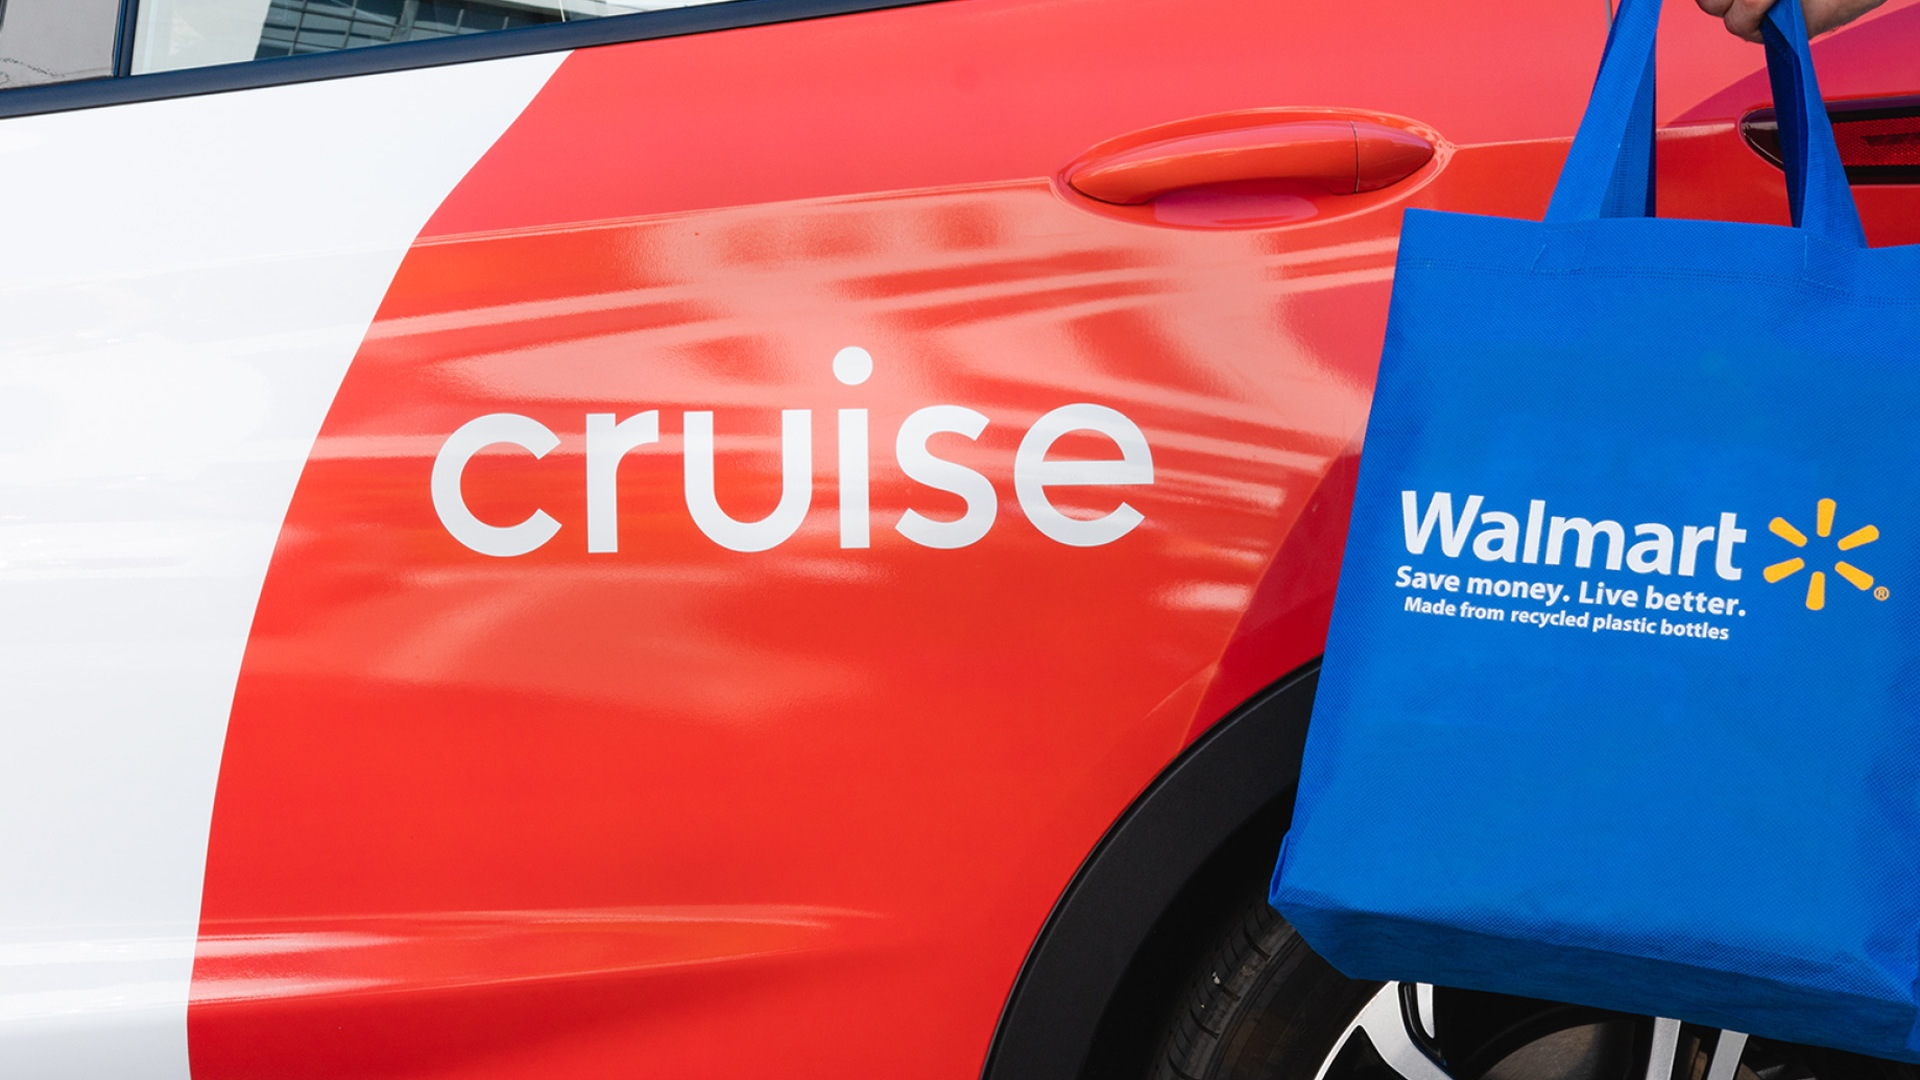 Cruise and Walmart automated delivery service